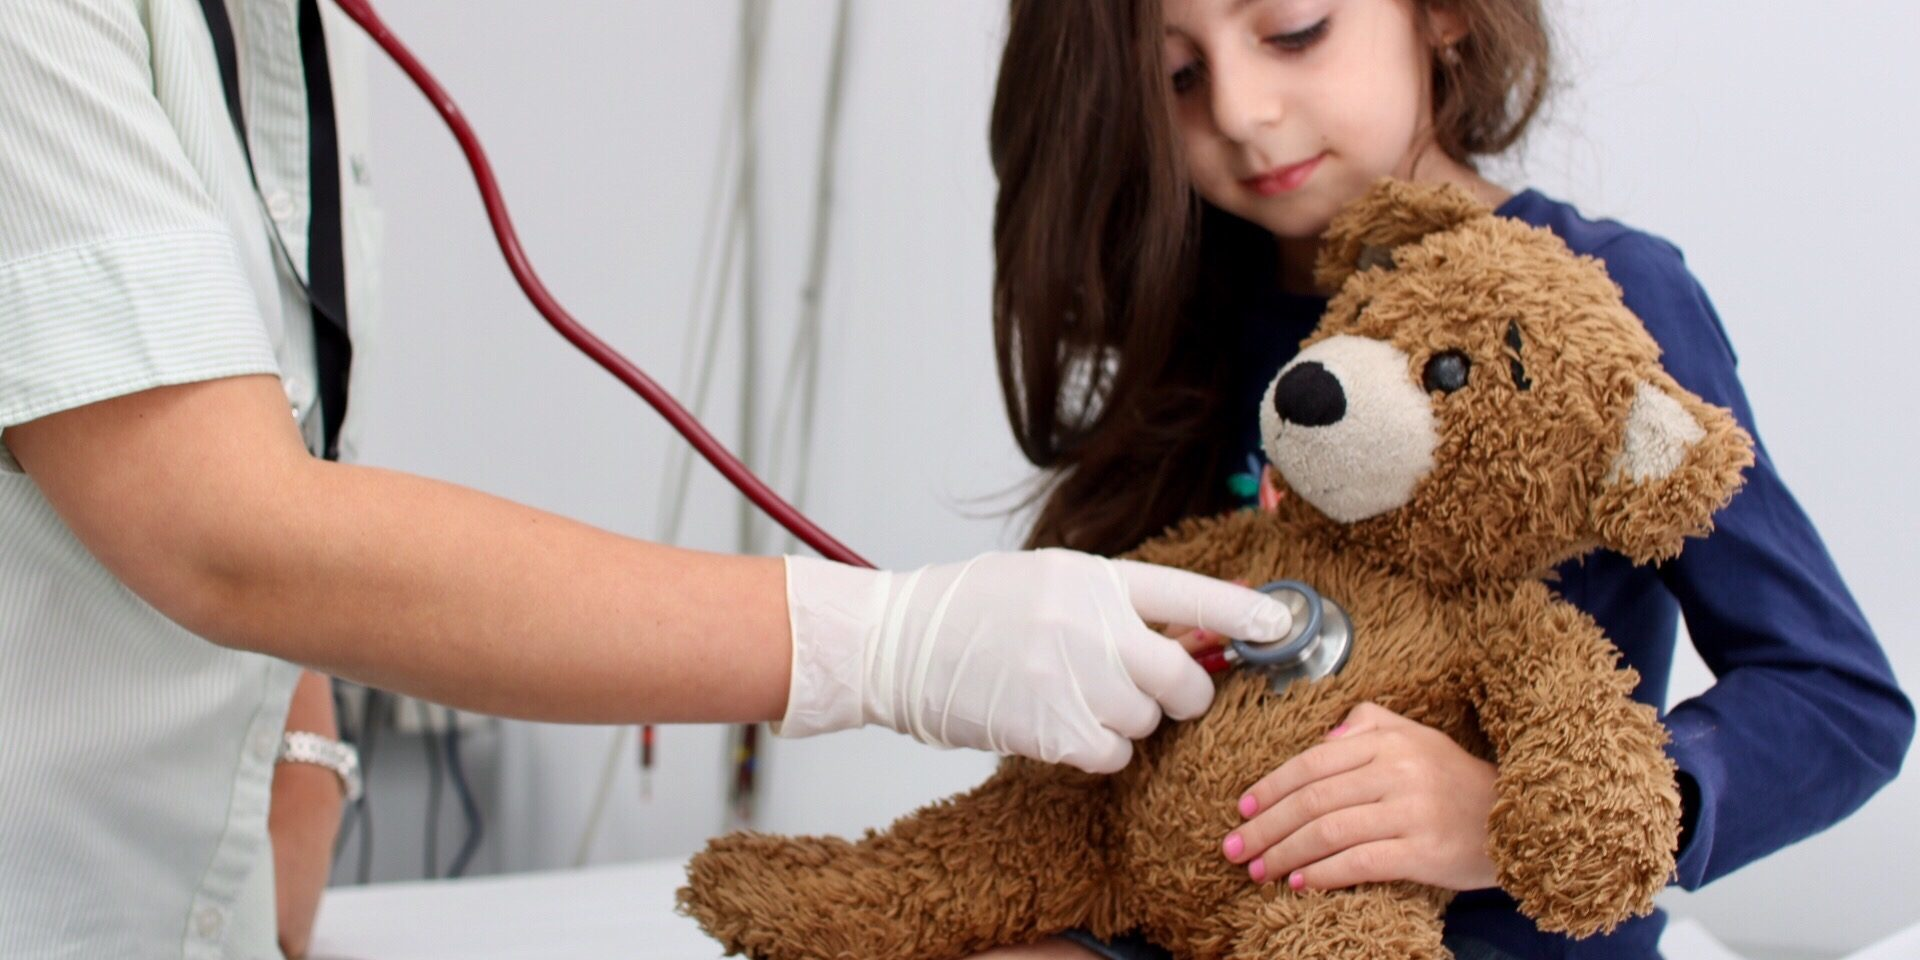 Medical professional using stethoscope on teddy bear in little girl's arms